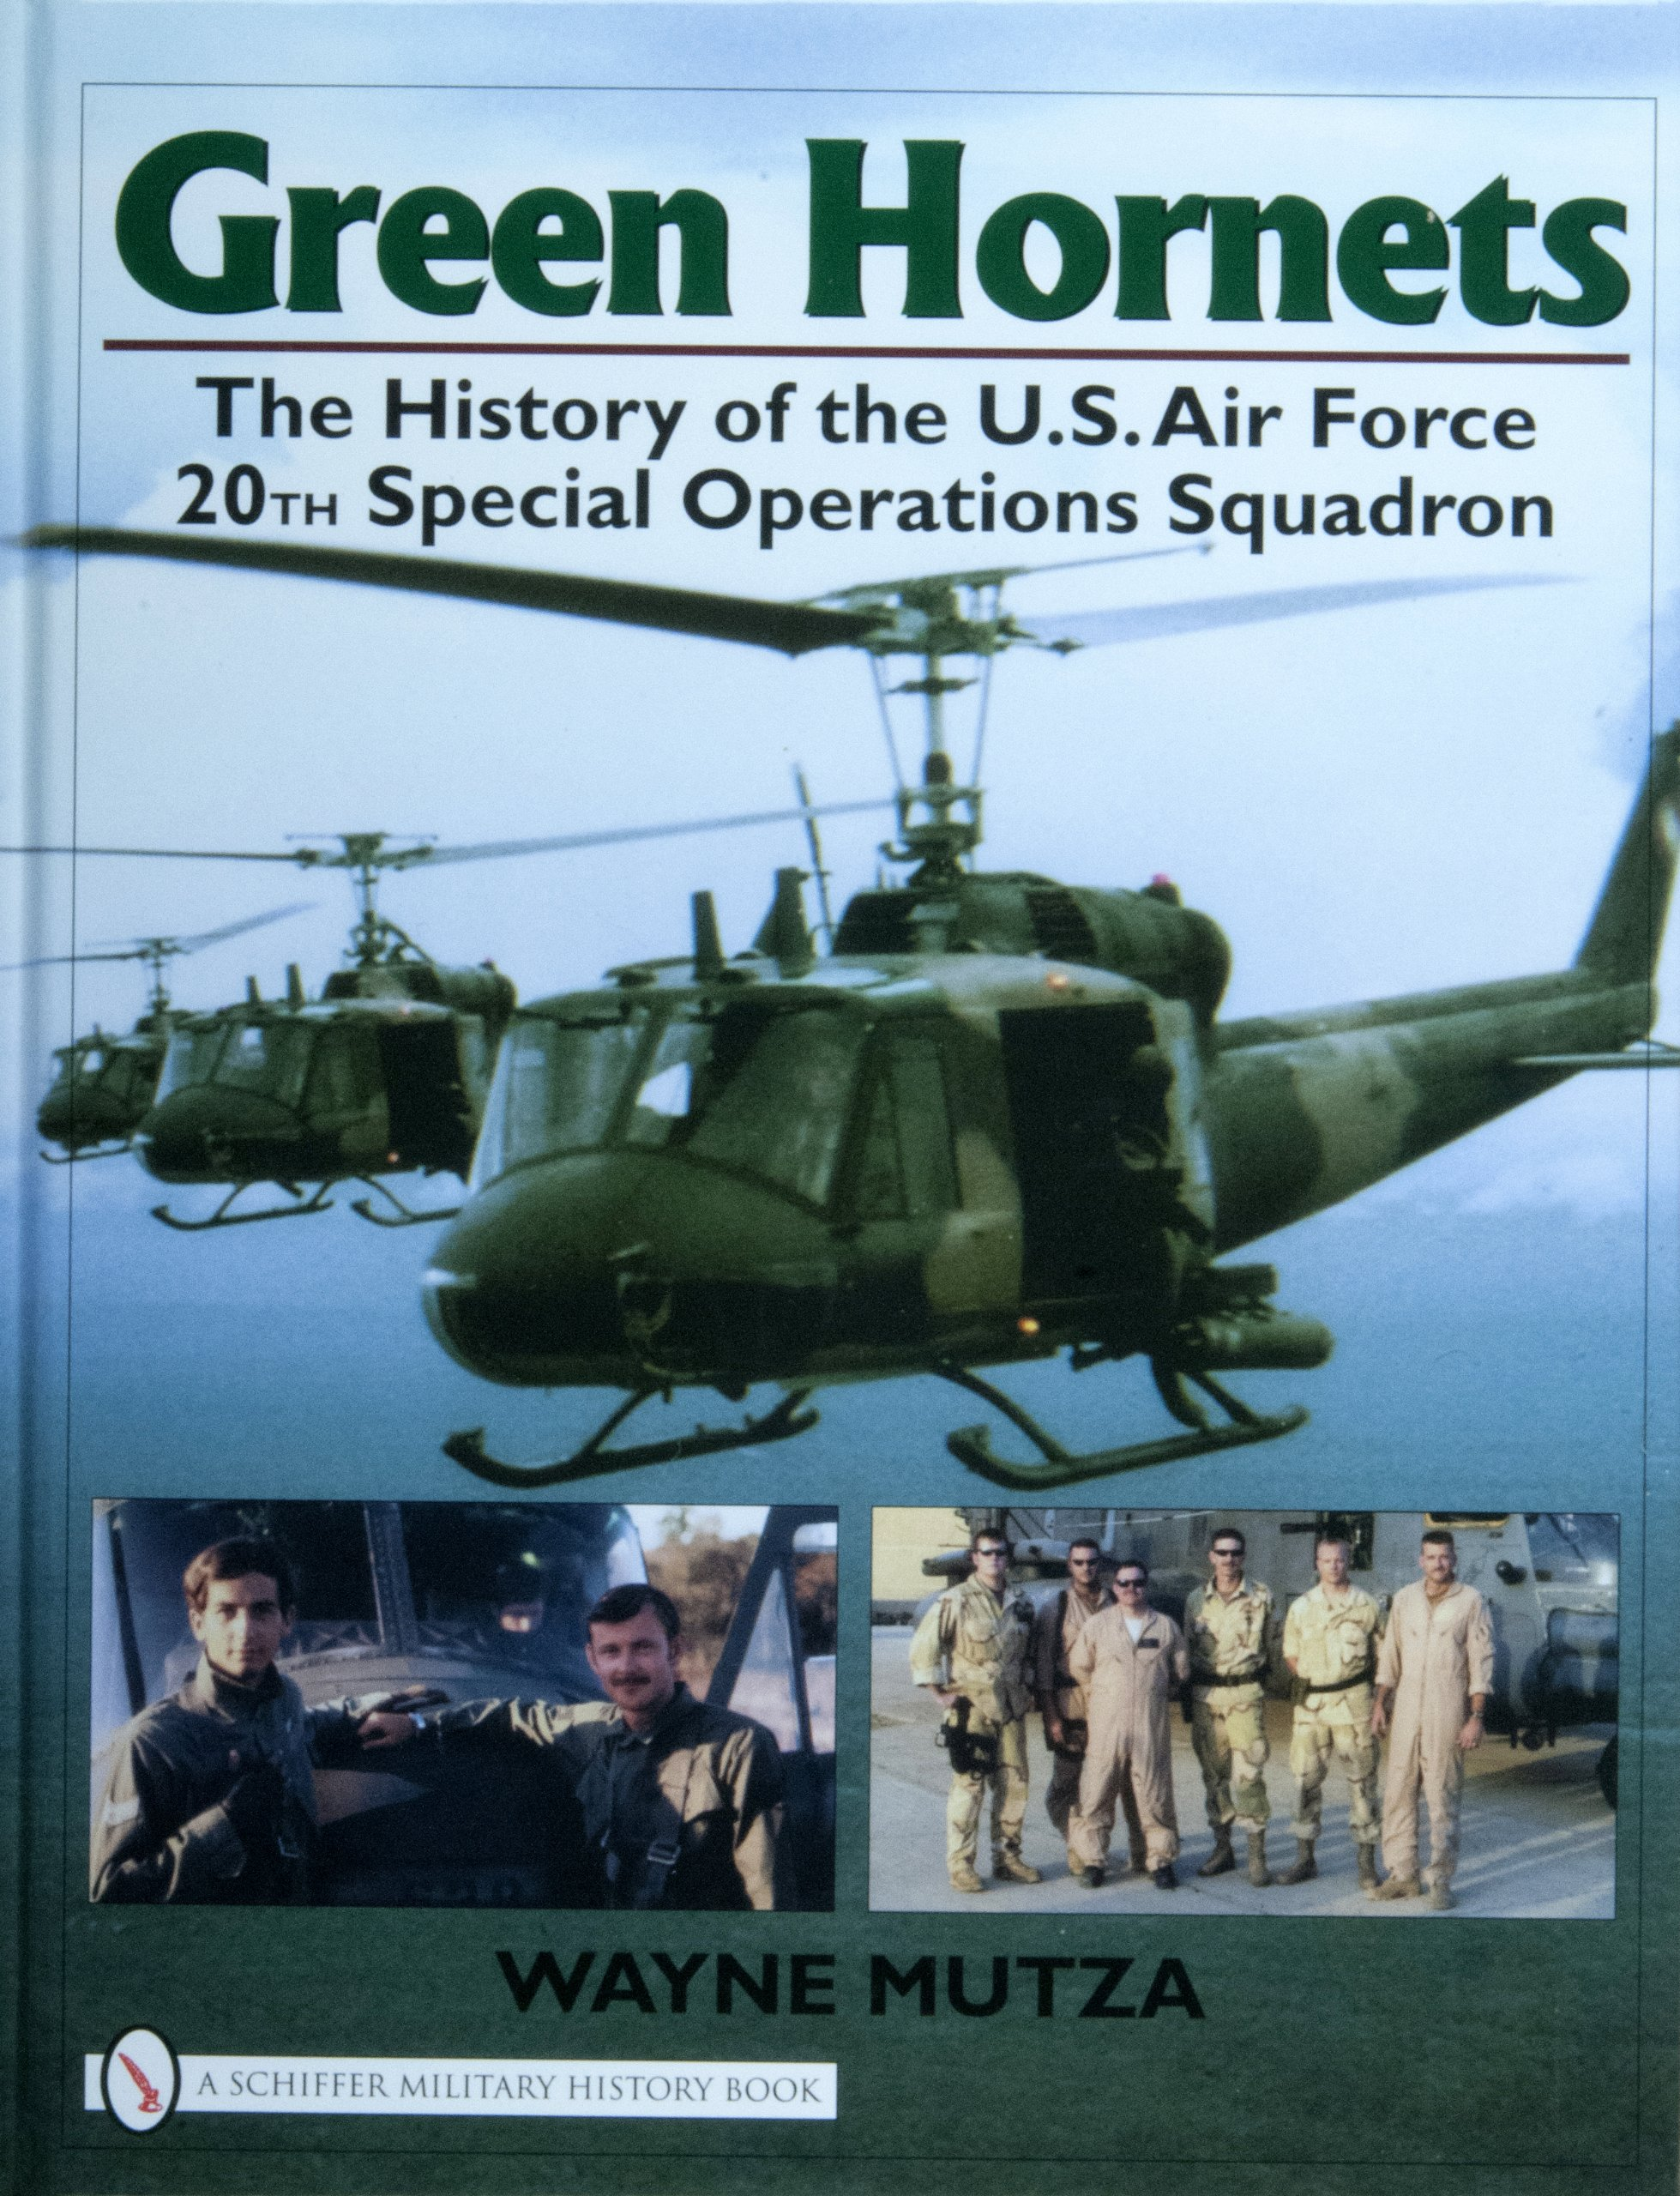 Green Hornets: The History of the U.S. Air Force 20th Special Operations Squadron (Schiffer Military History Book) PDF Text fb2 ebook